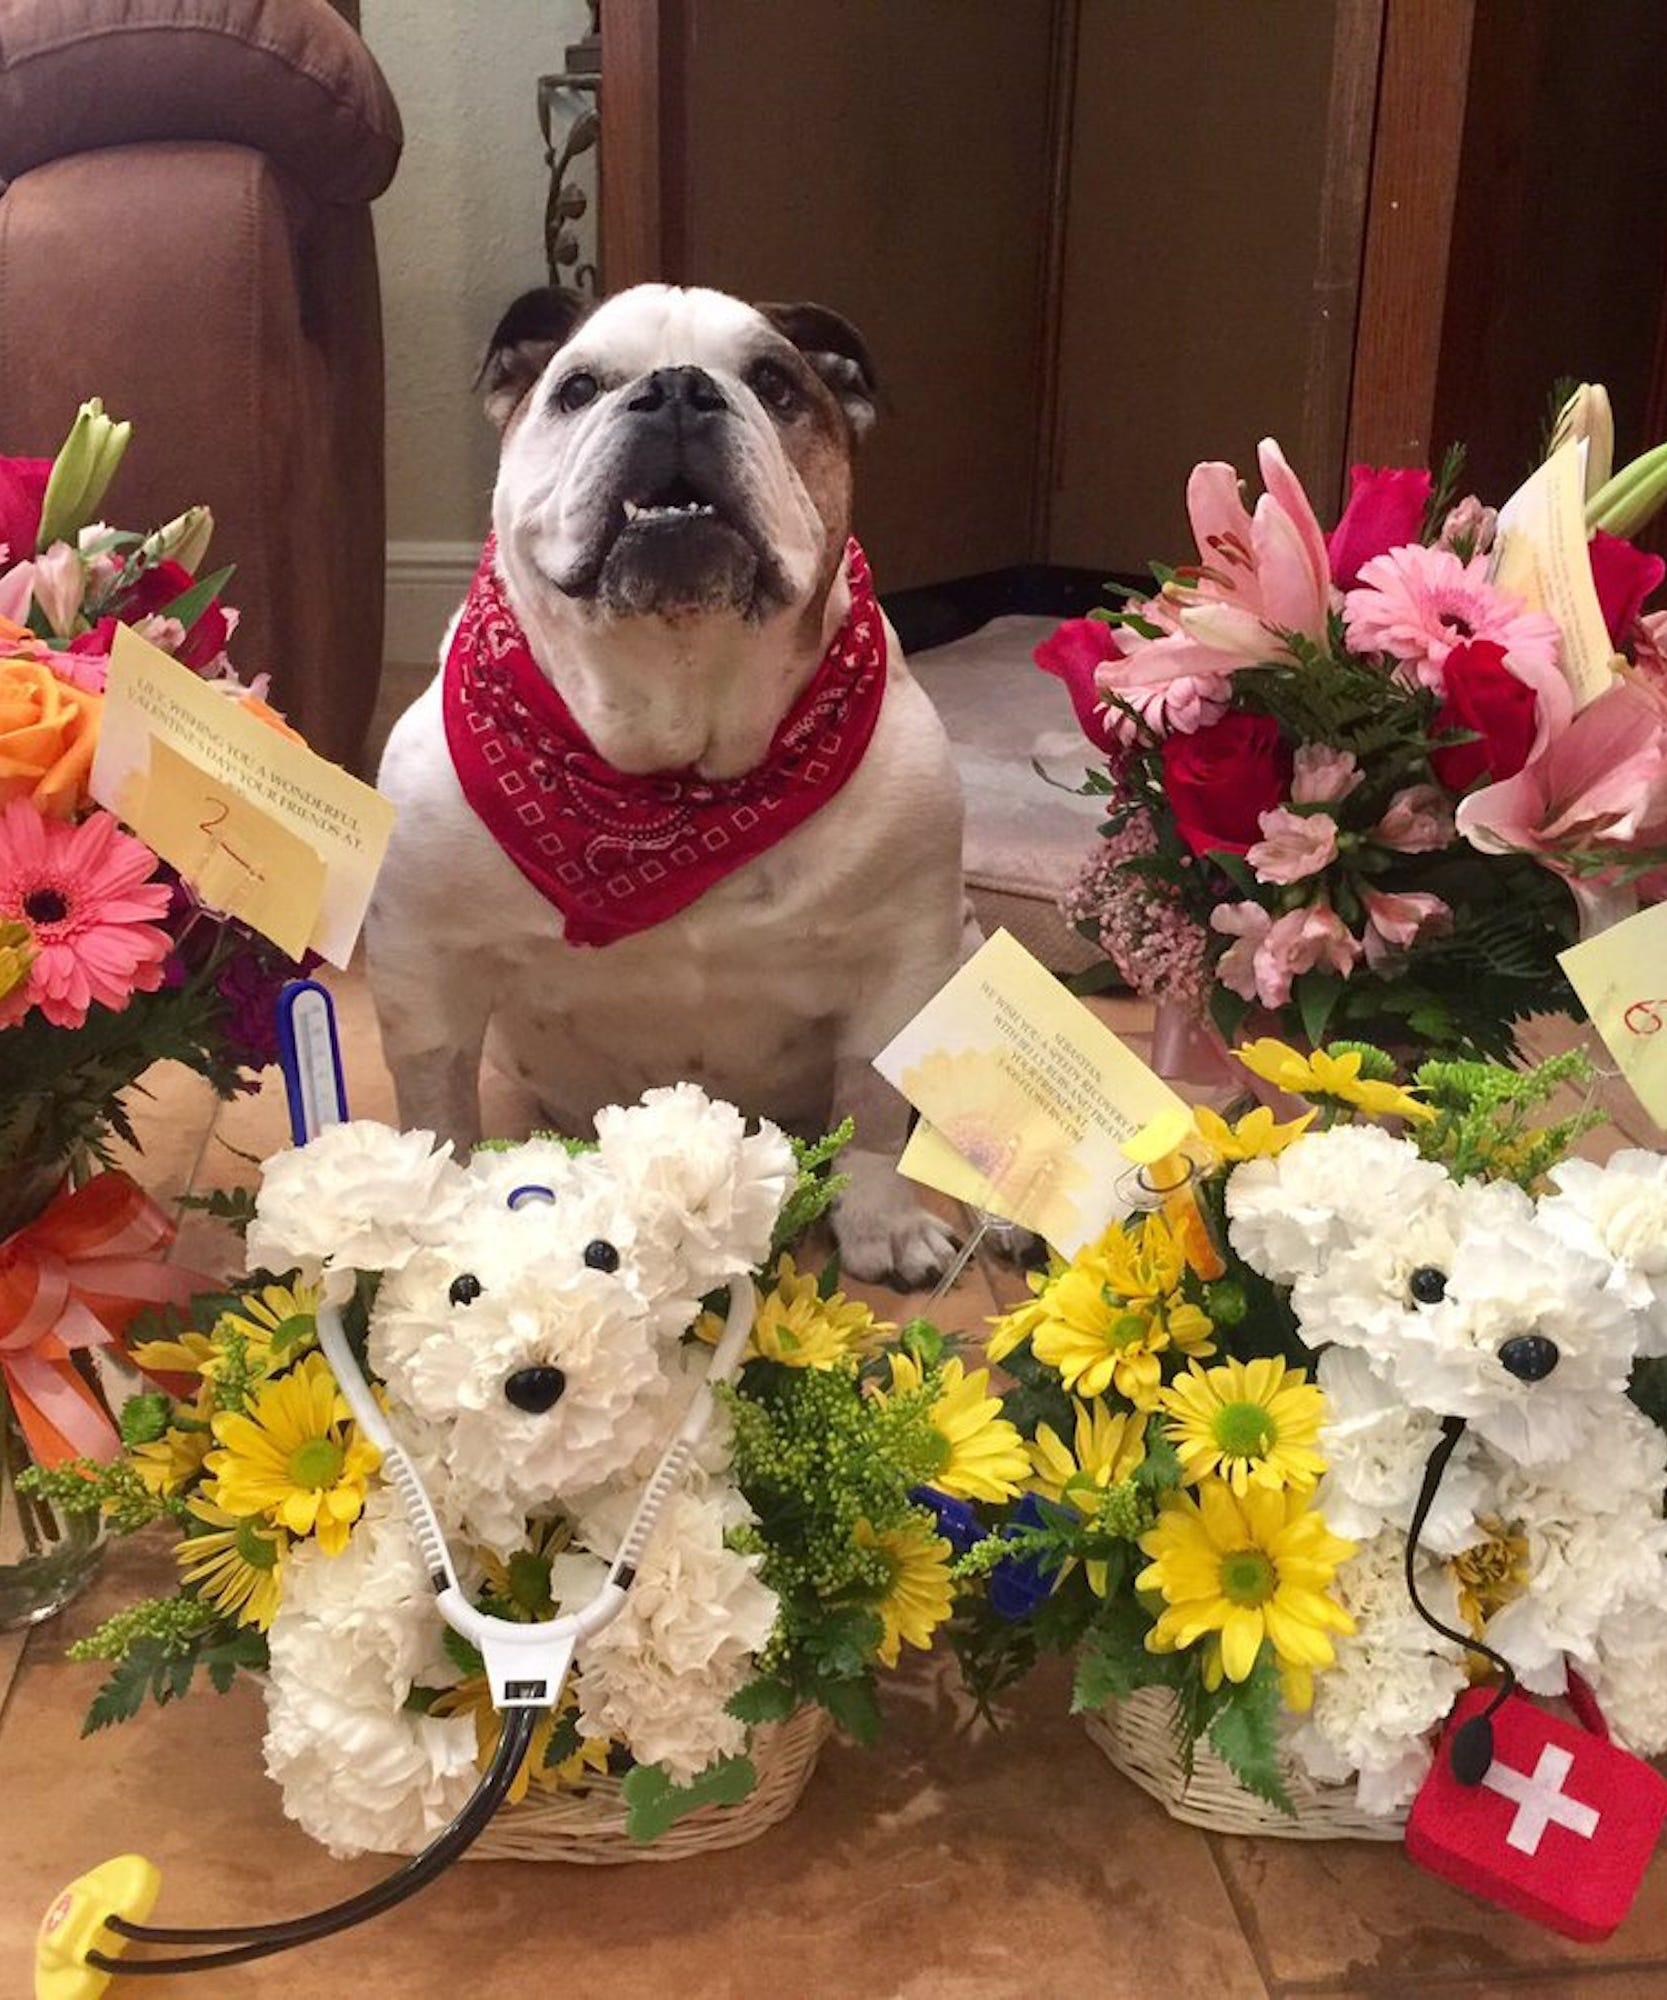 Dad orders get well gift flowers for dog izmirmasajfo Gallery